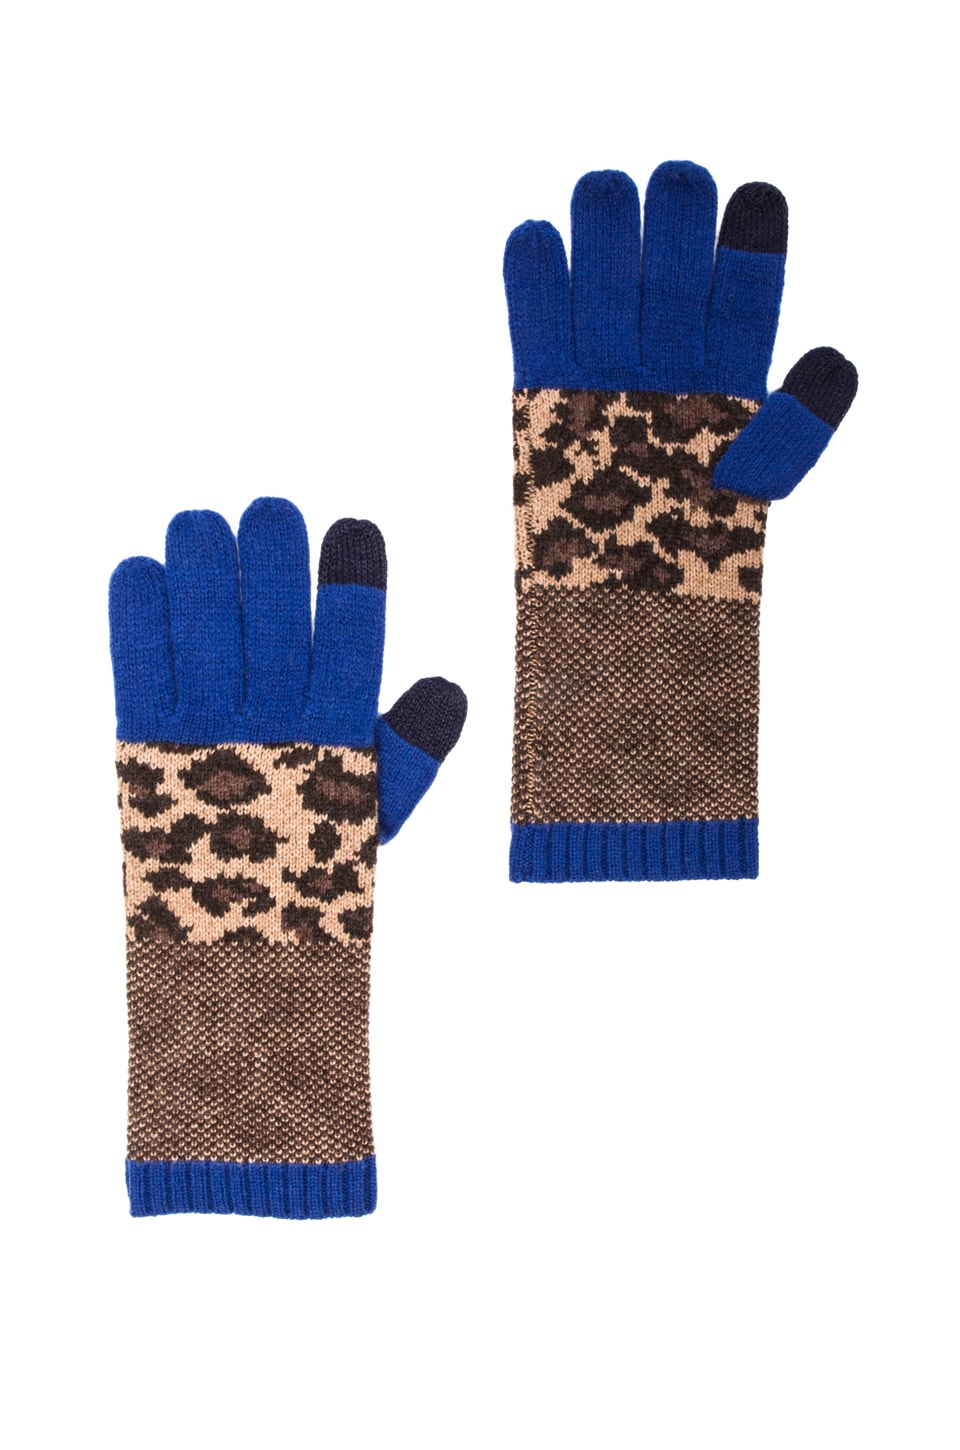 Marc by Marc Jacobs Lenora Leopard Glove in Chicory Brown Multi